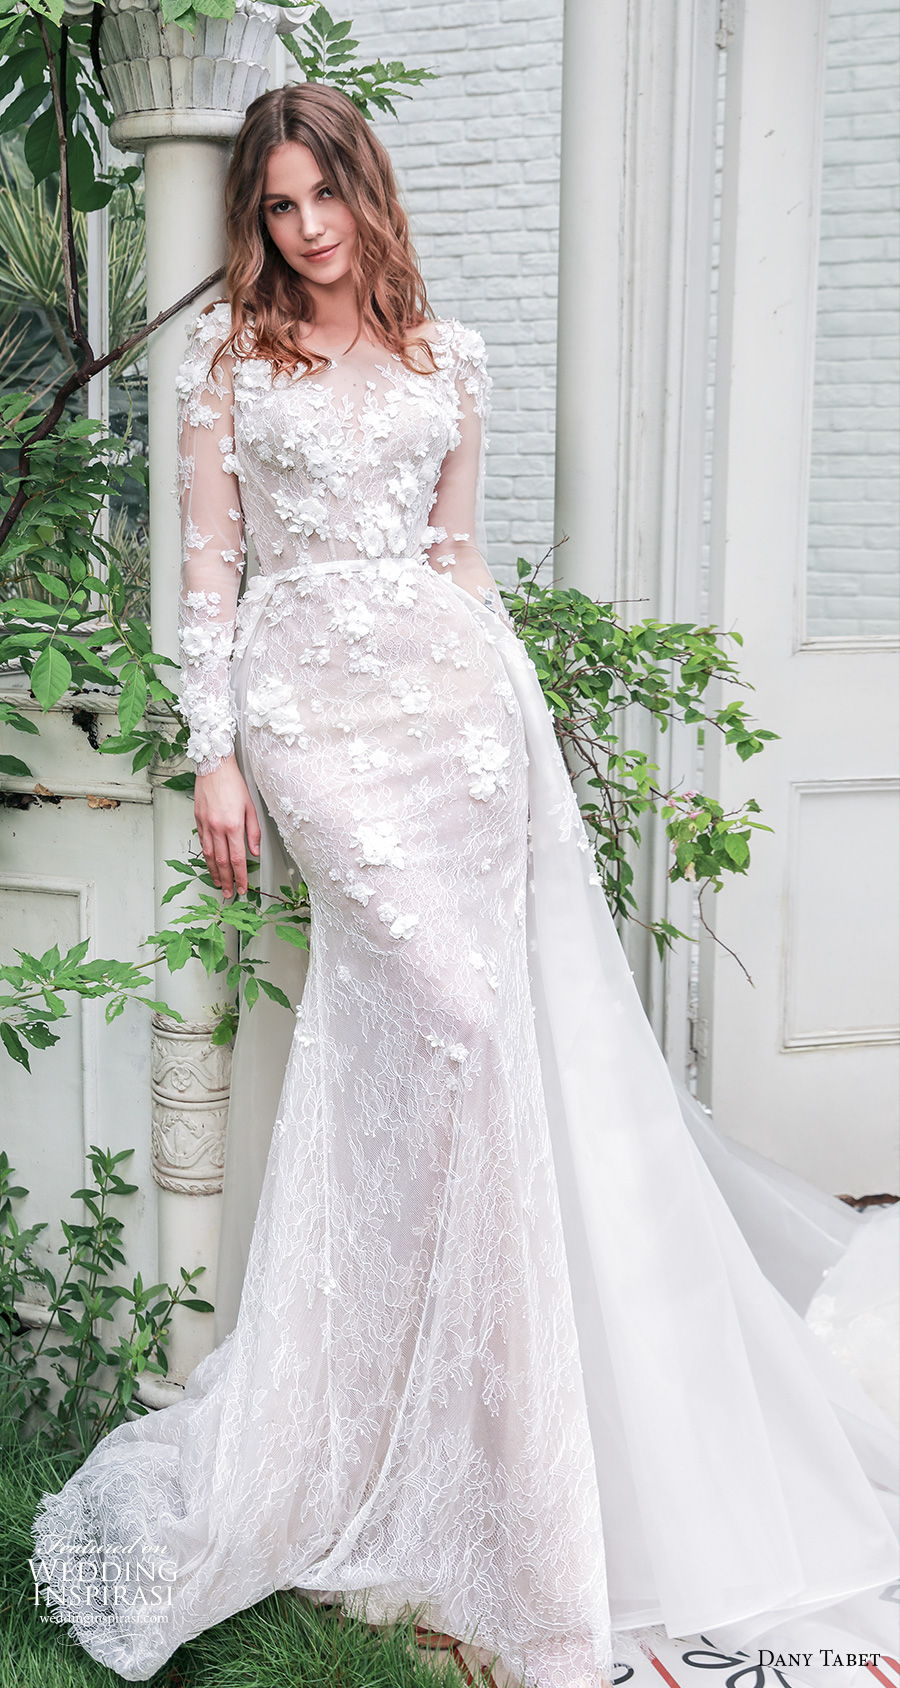 dany tabet 2021 emerge bridal long sleeves v neck heavily embellished bodice romantic fit and flare wedding dress keyhole back chapel train (2) mv